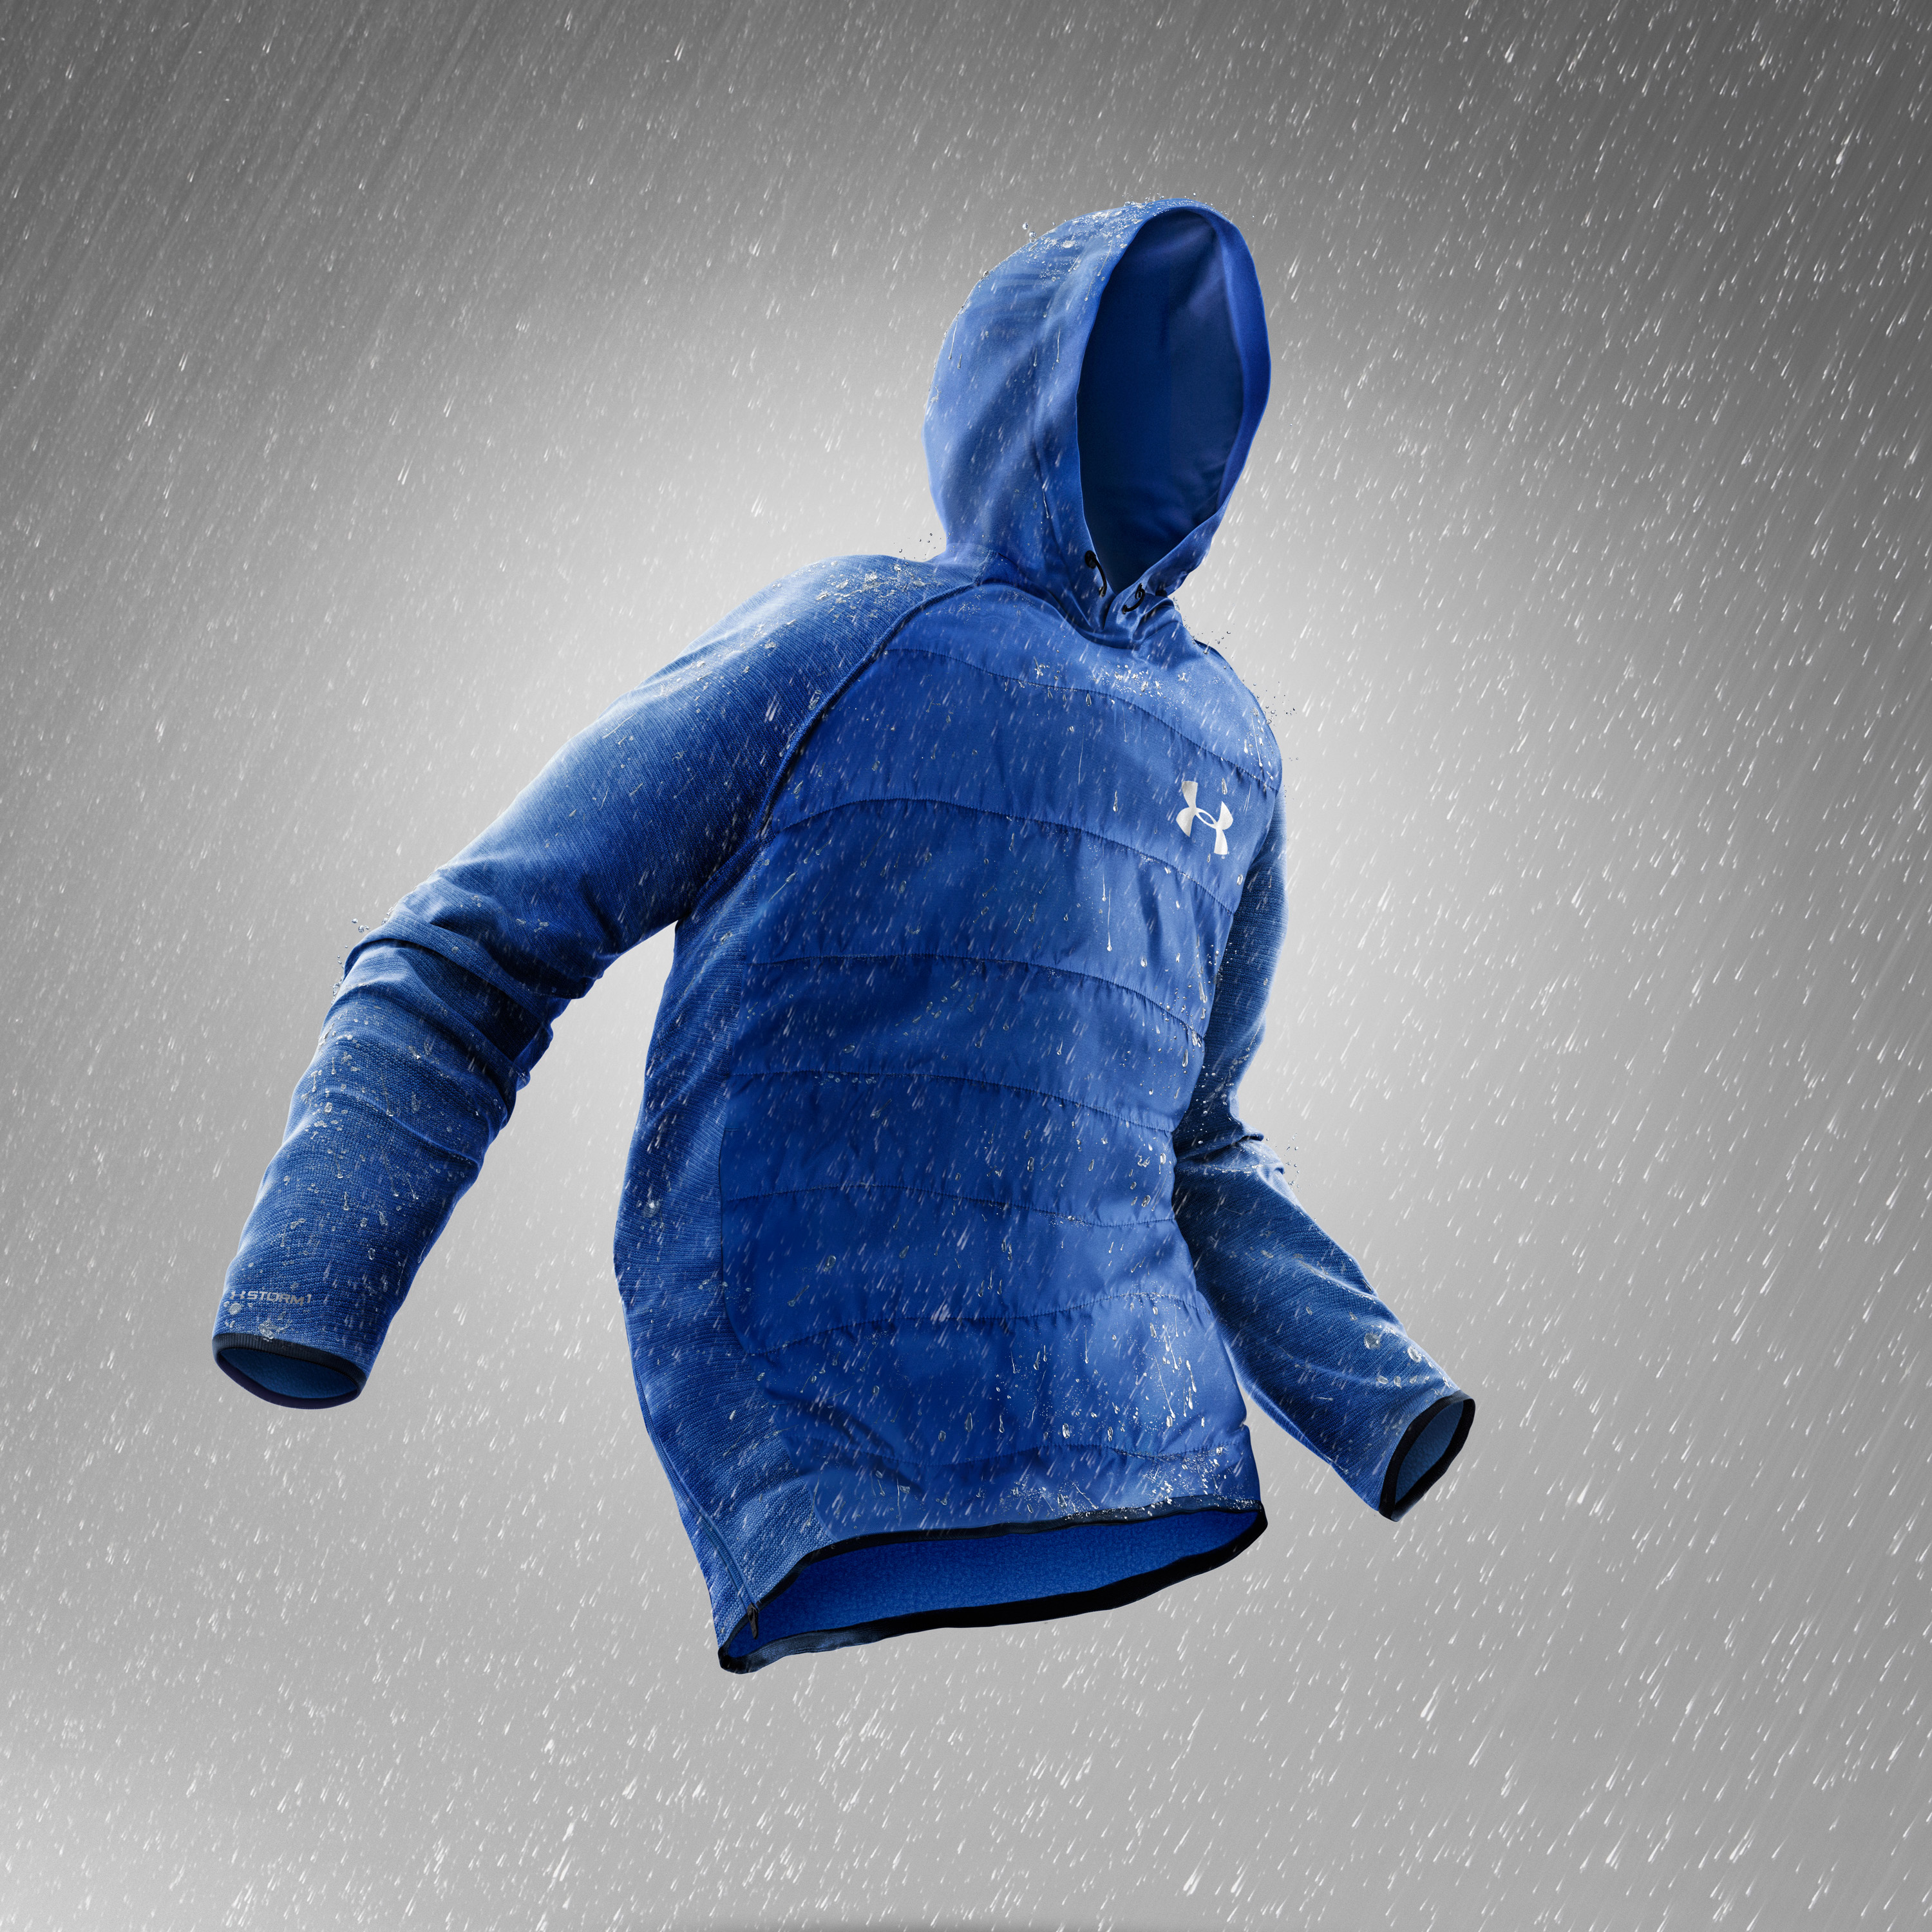 Under Armour: SWACKET - Product Design & Photography